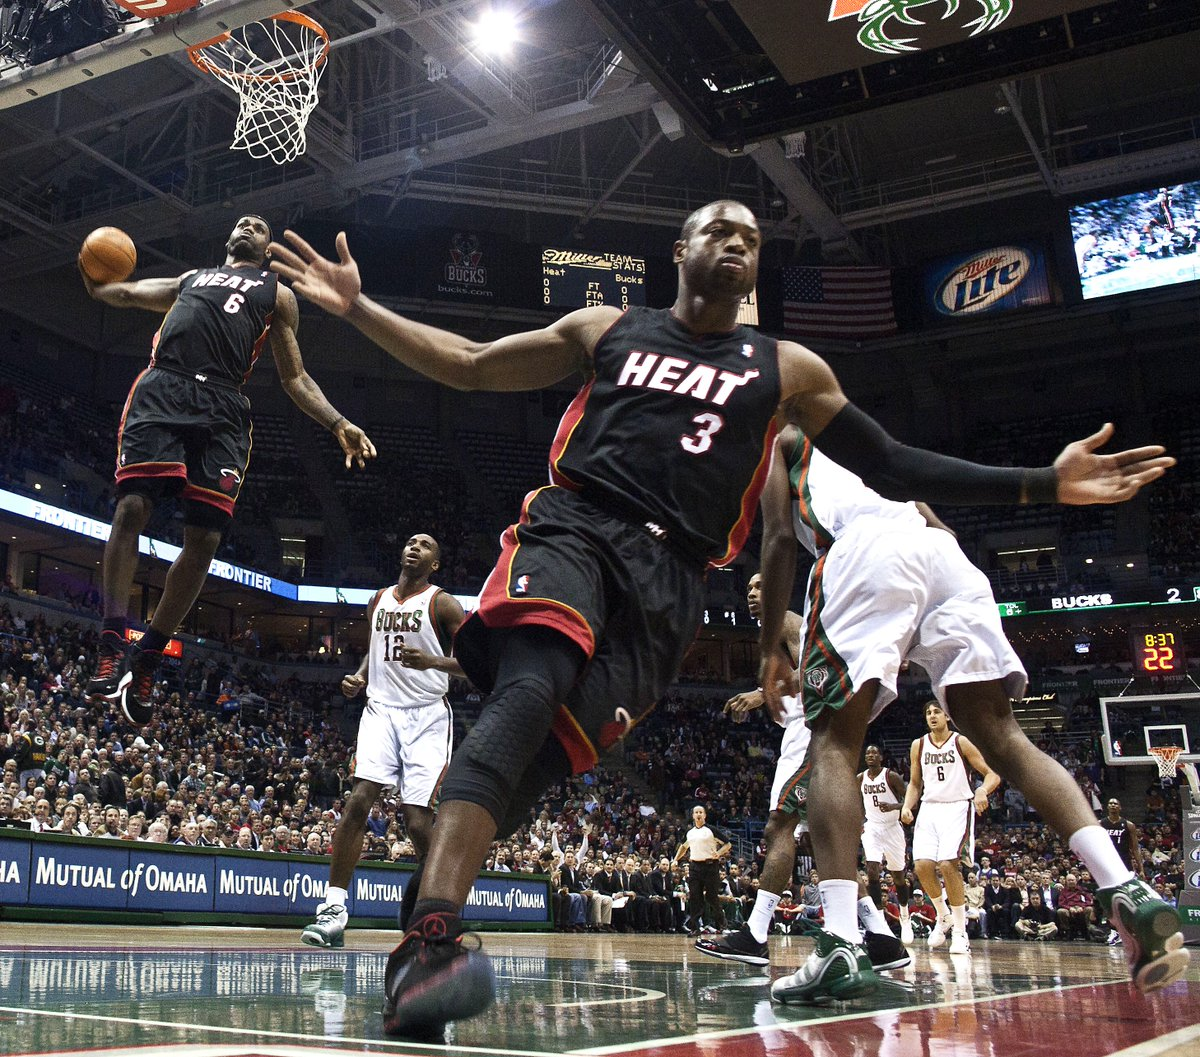 This is only photo D Wade said he'd ask LeBron to sign and hang in his home when he retires, per @mcten